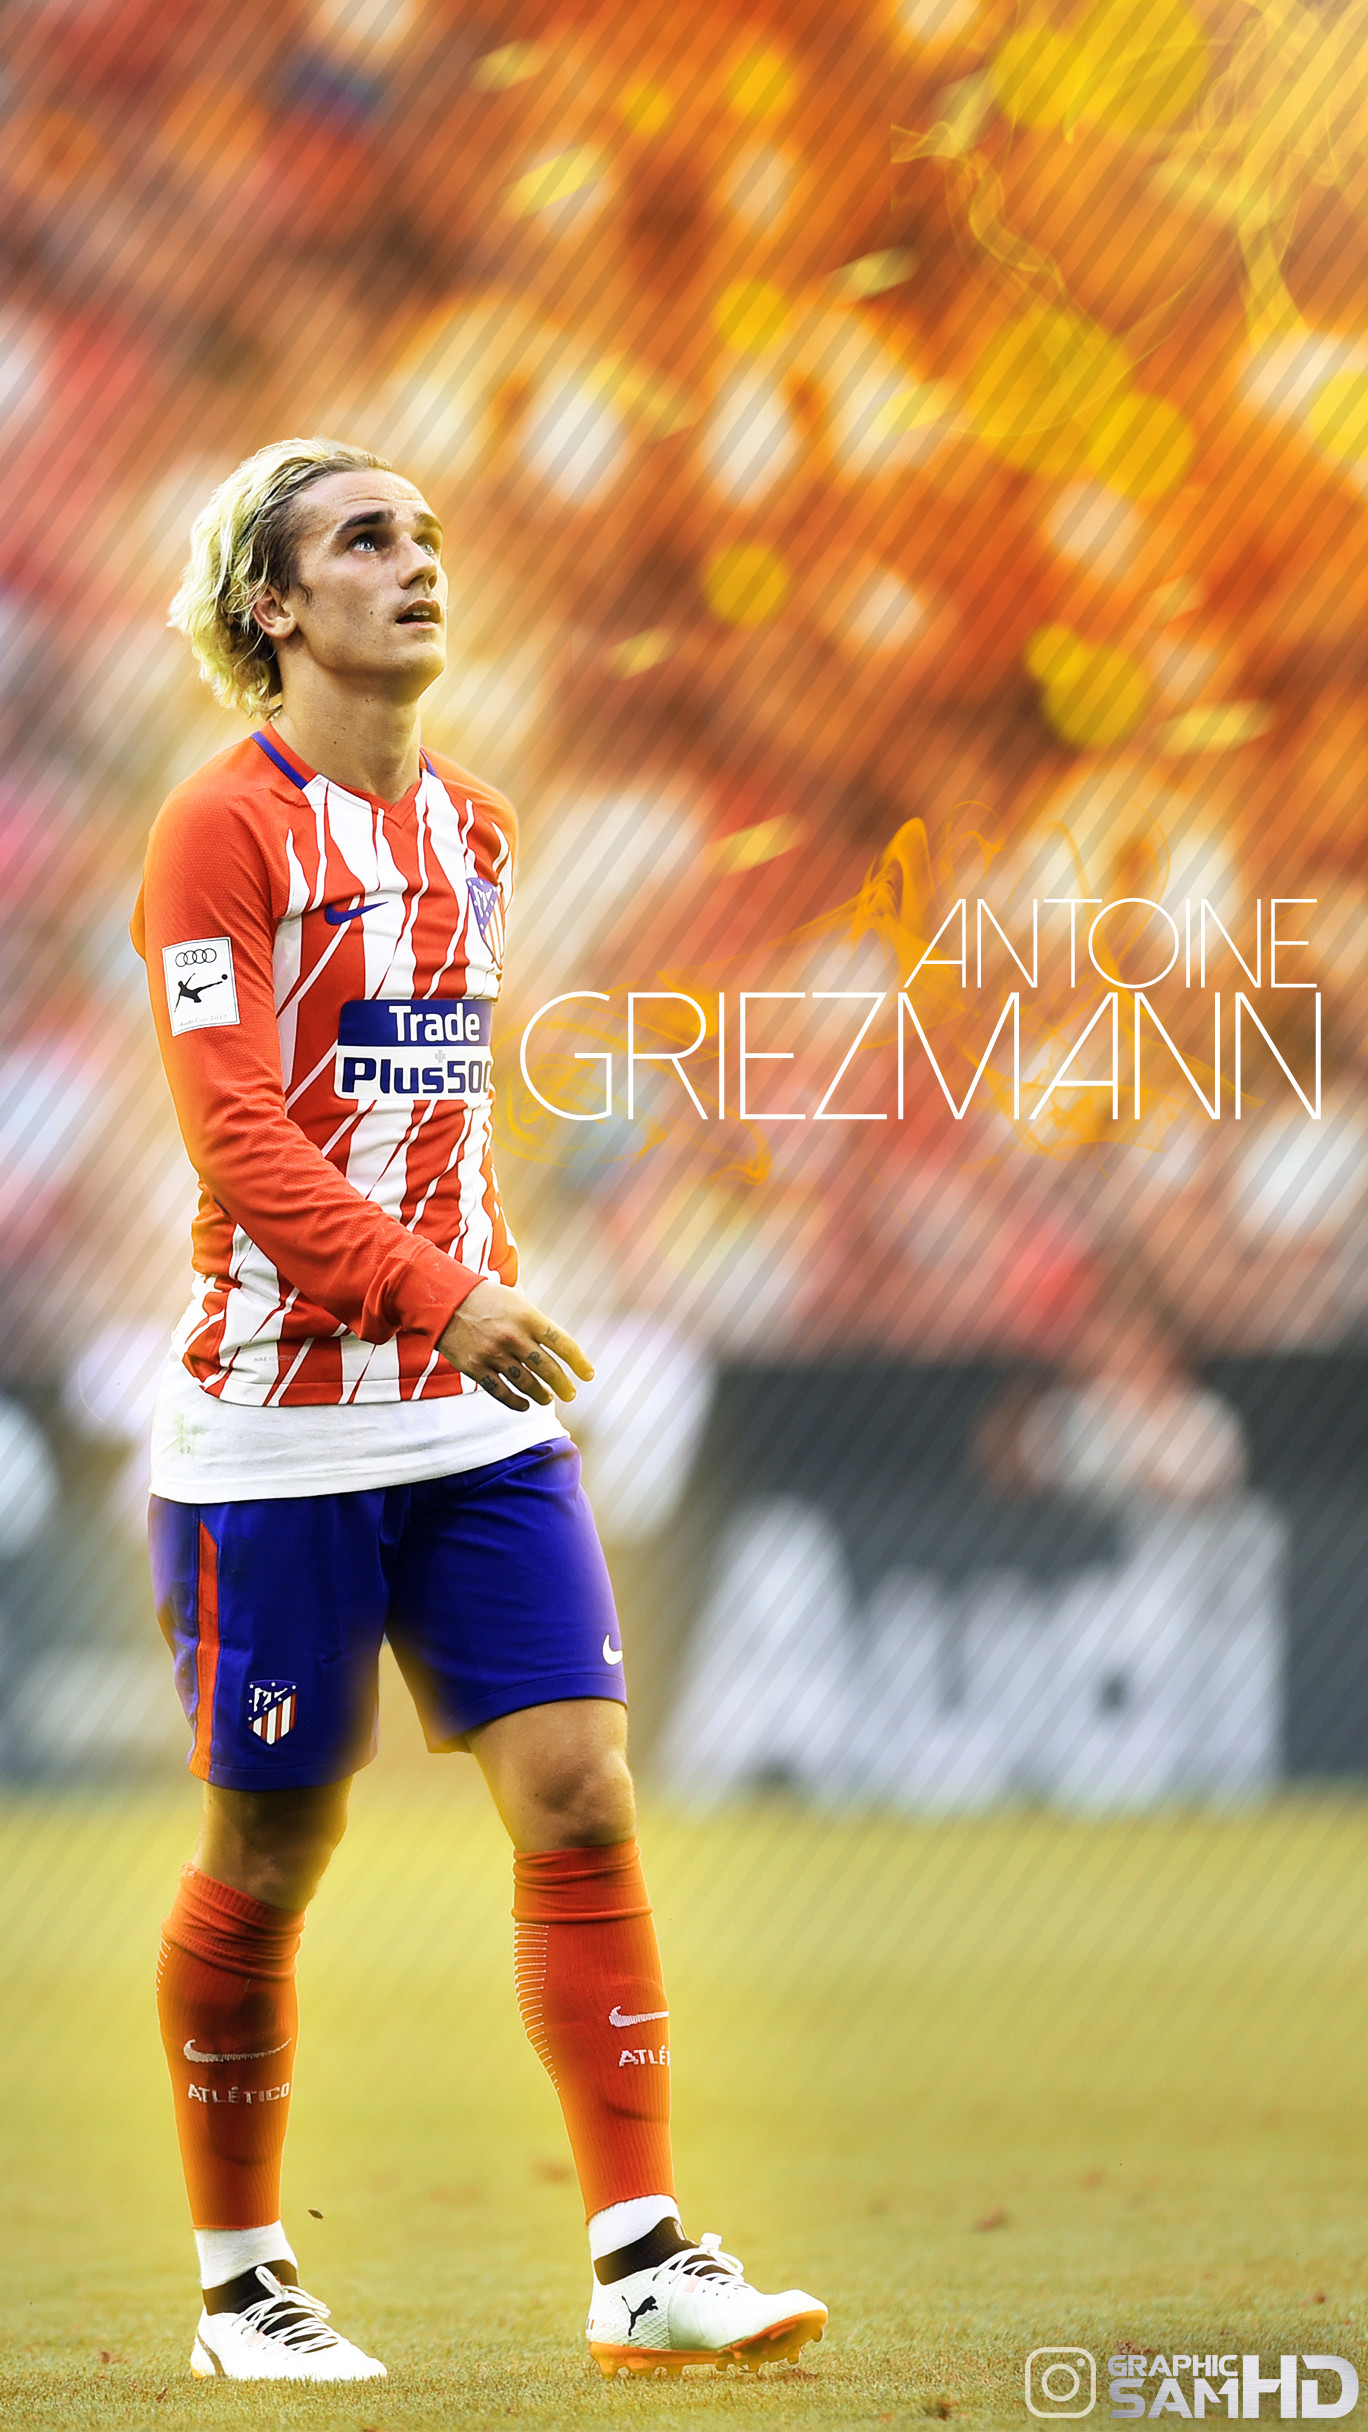 Real Madrid Wallpaper Full Hd Antoine Griezmann Wallpapers 86 Images